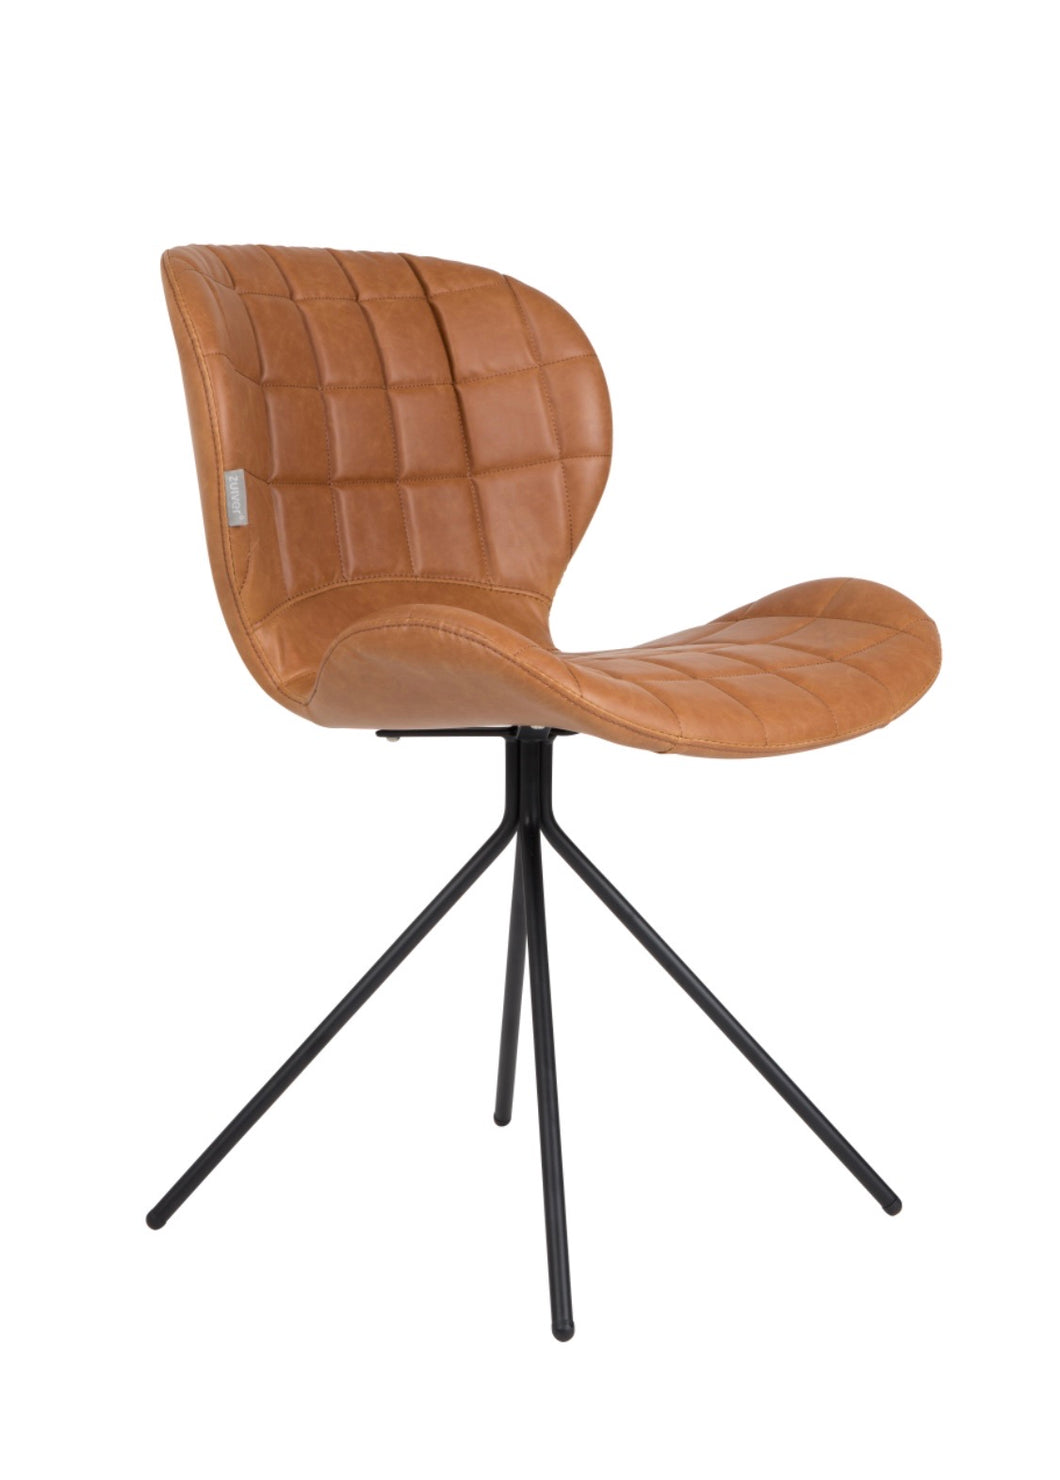 TAN FAUX LEATHER CHAIR